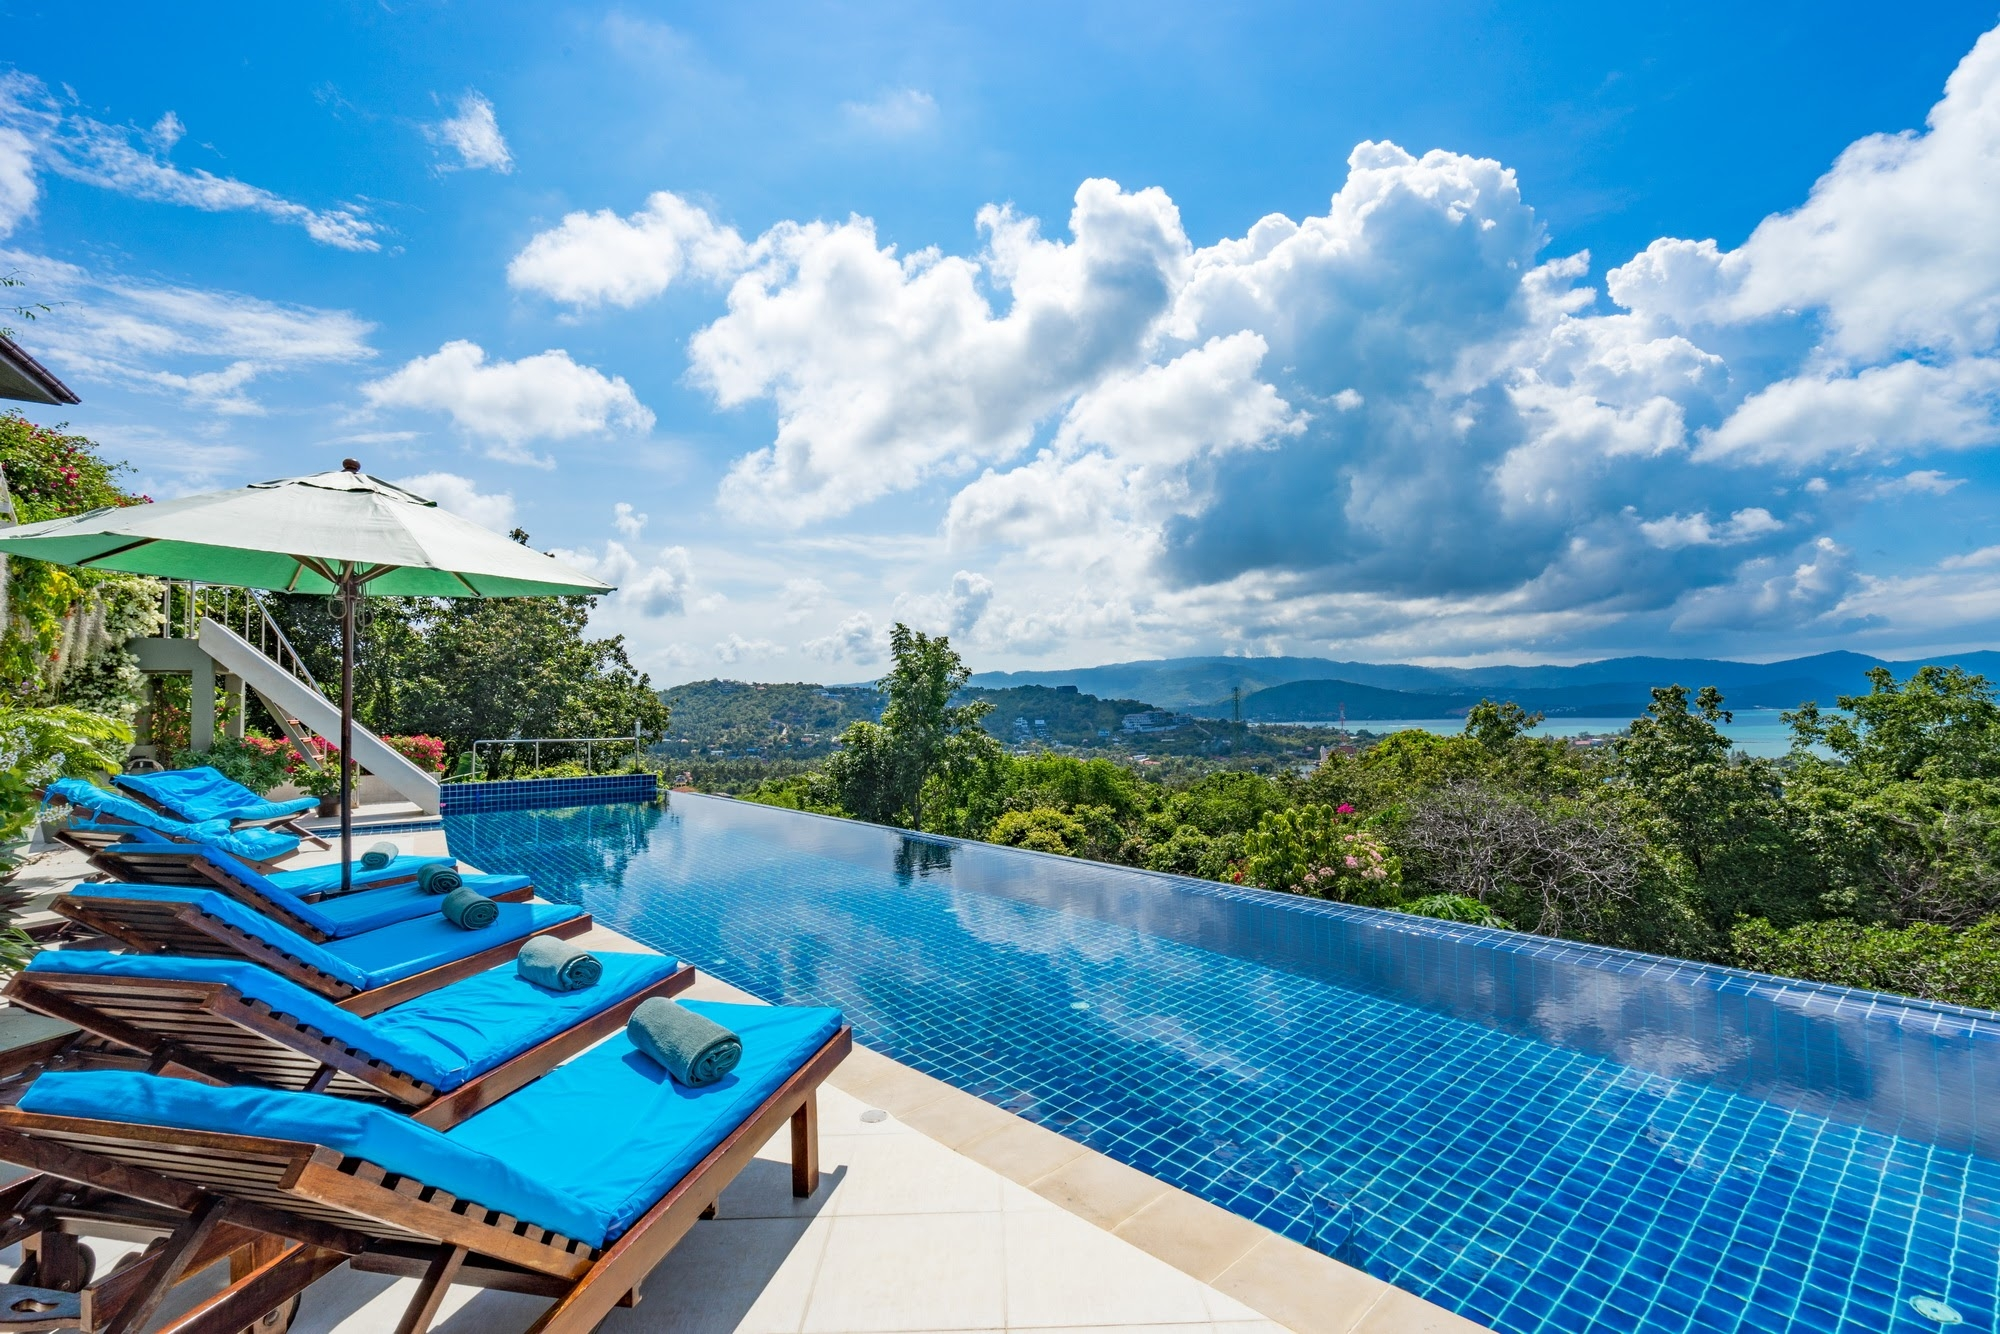 Koh Samui,THAILAND - retreat yourself in a tropical paradise